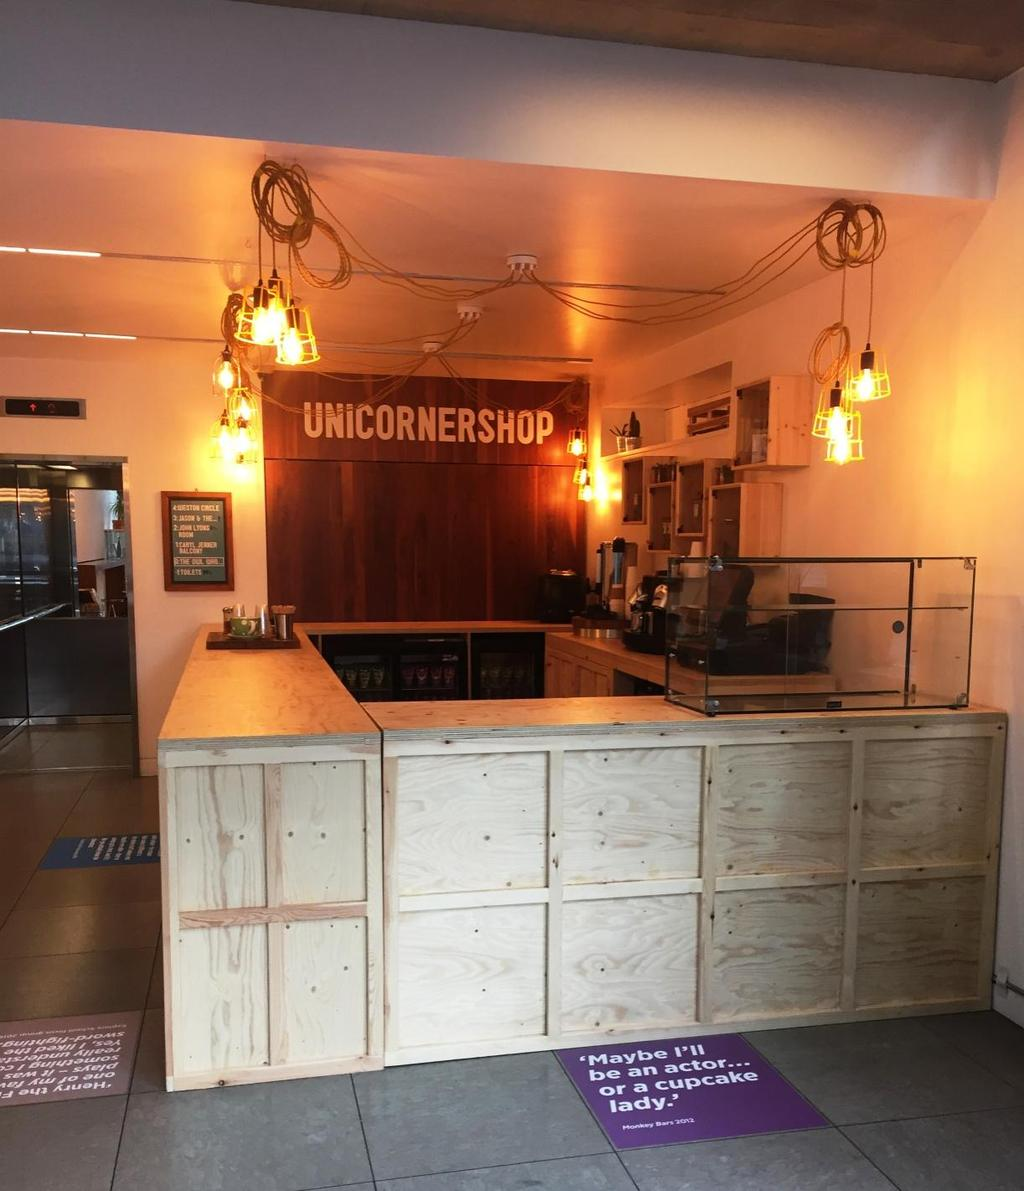 There is a cafe in the Foyer called the Unicornershop where you can buy drinks and snacks.